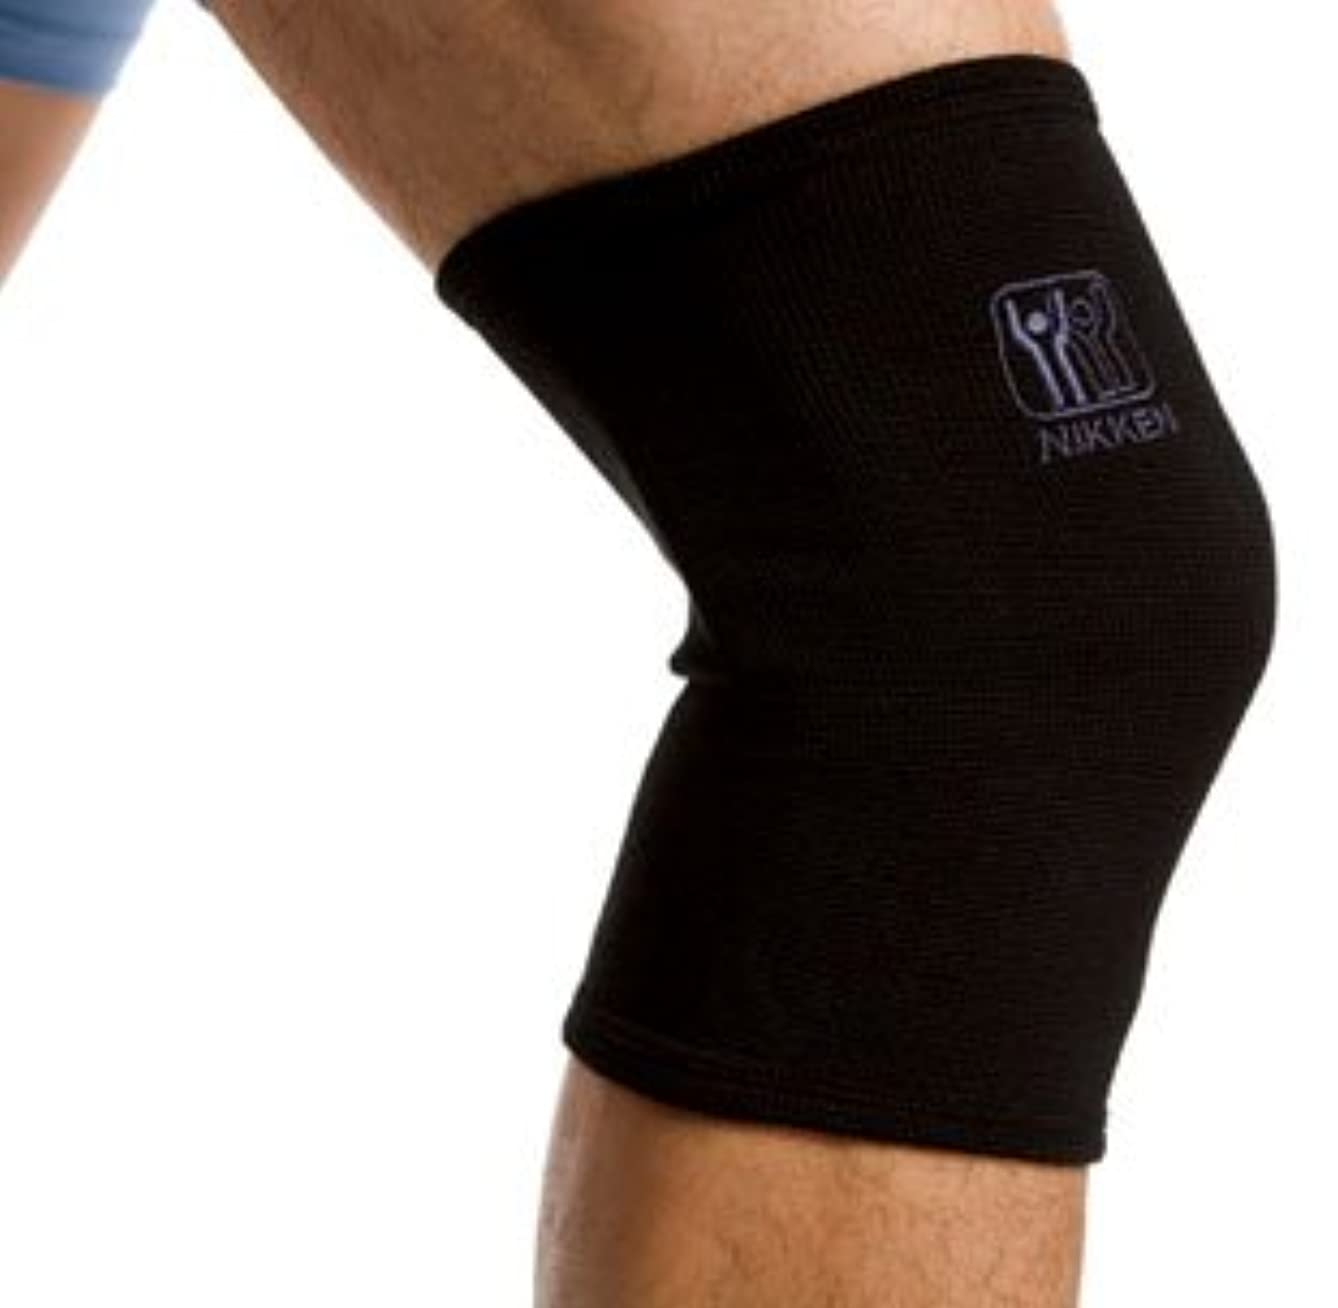 Nikken 1 Large Knee Sleeve 1834 – Black, Thin Stretchy Support, Men Women, Far Infrared, Compression, Brace, Arthritis ACL Meniscus Pain Relief & Recovery, Running Weightlifting Basketball